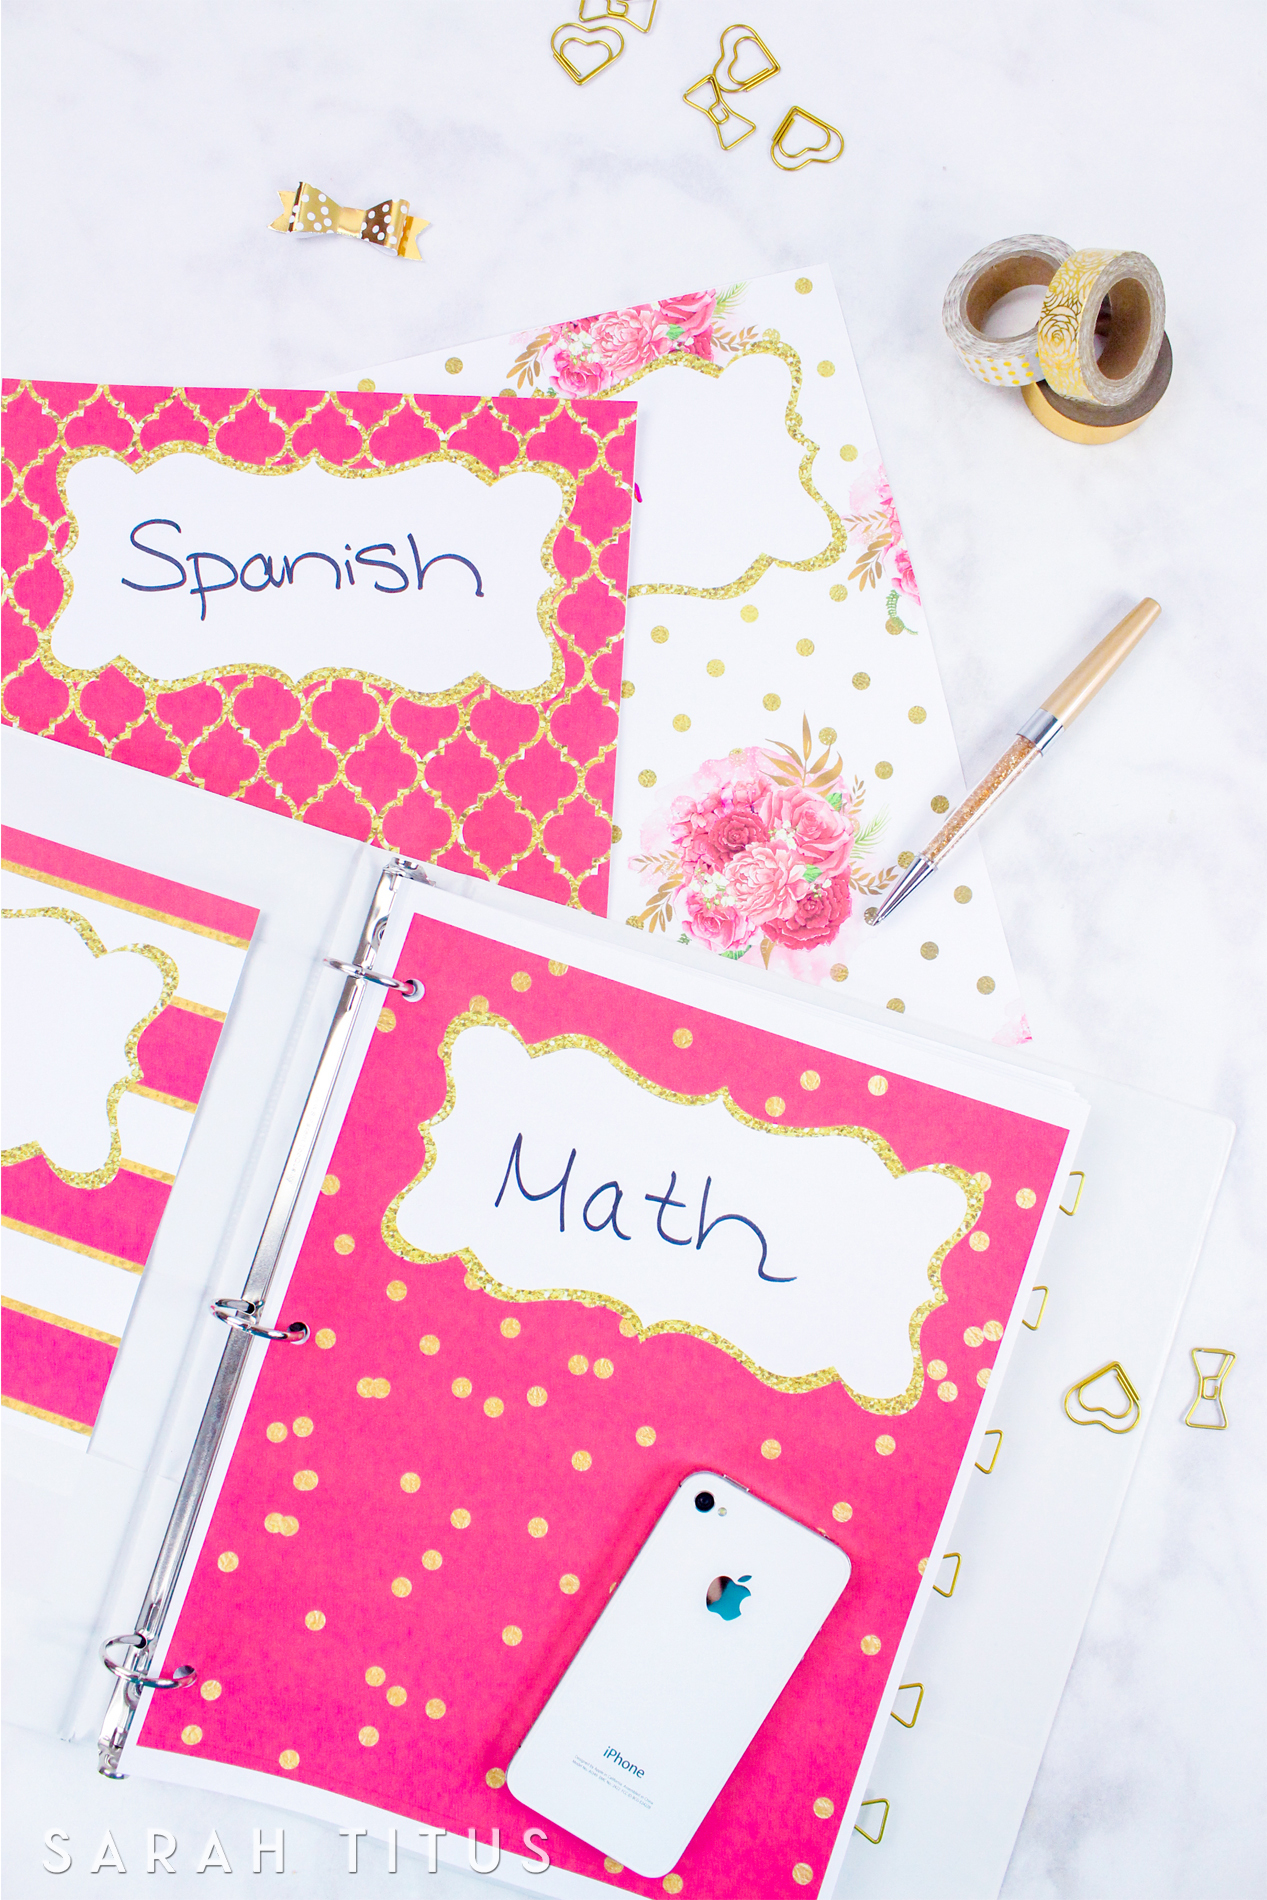 Binder Covers / Dividers Free Printables - Sarah Titus - Free Printable Dividers